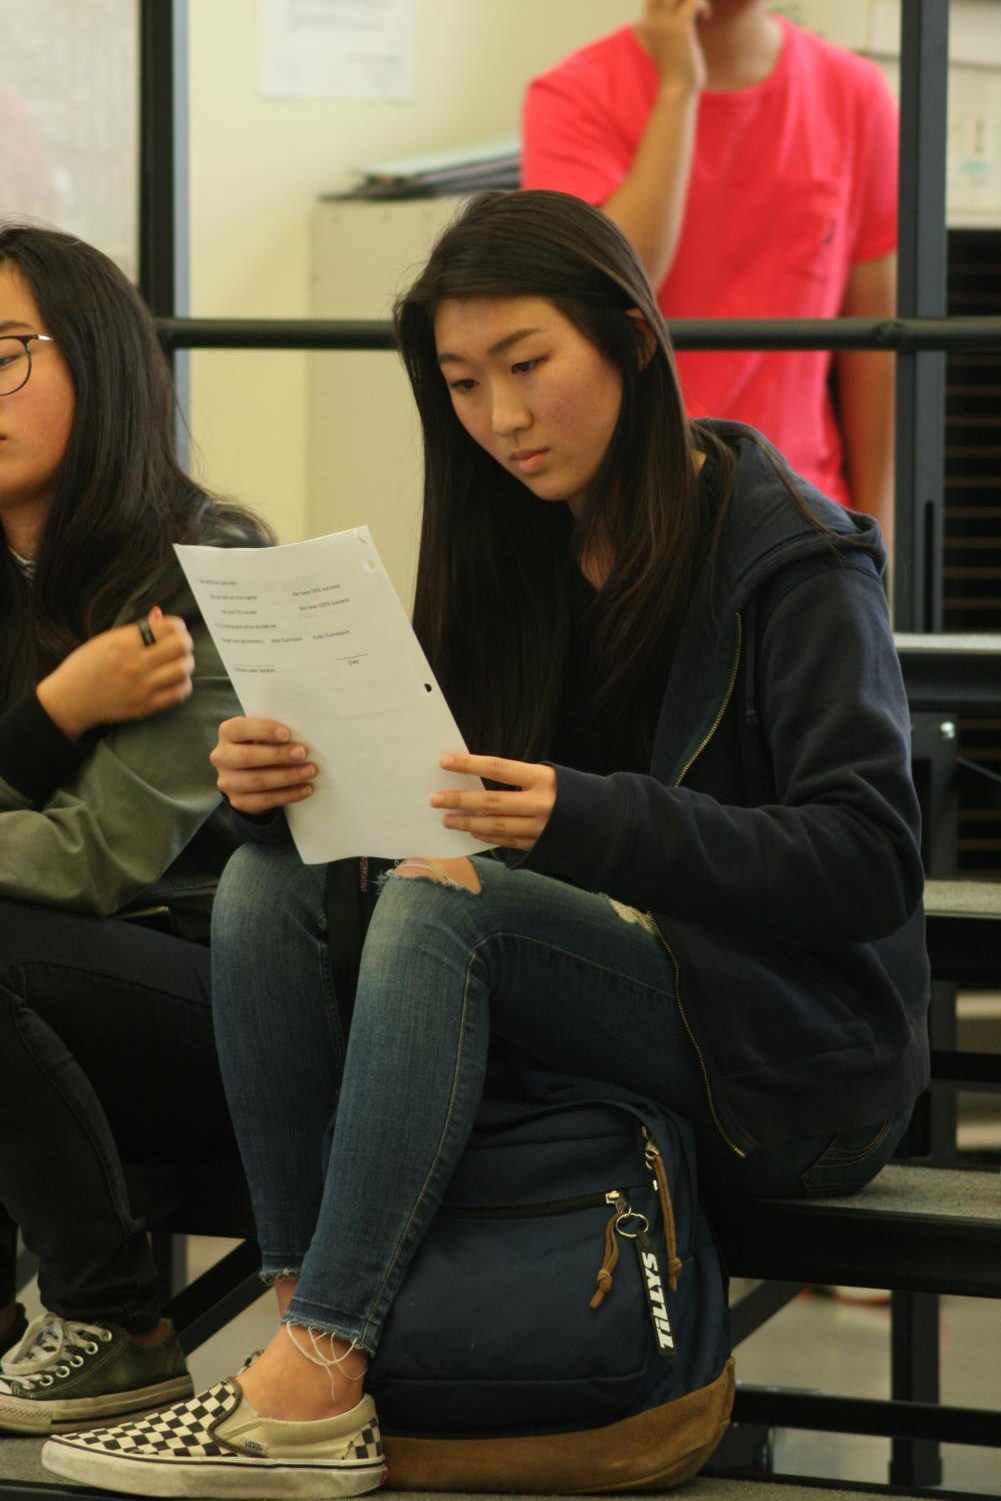 Freshman Bia Shok looks over the 2019 leadership responsibilities after receiving the position of woodwind captain and assistant drum major. She will work closely with drum major and junior Stephanie Tang, planning summer musical gatherings and extra practices.